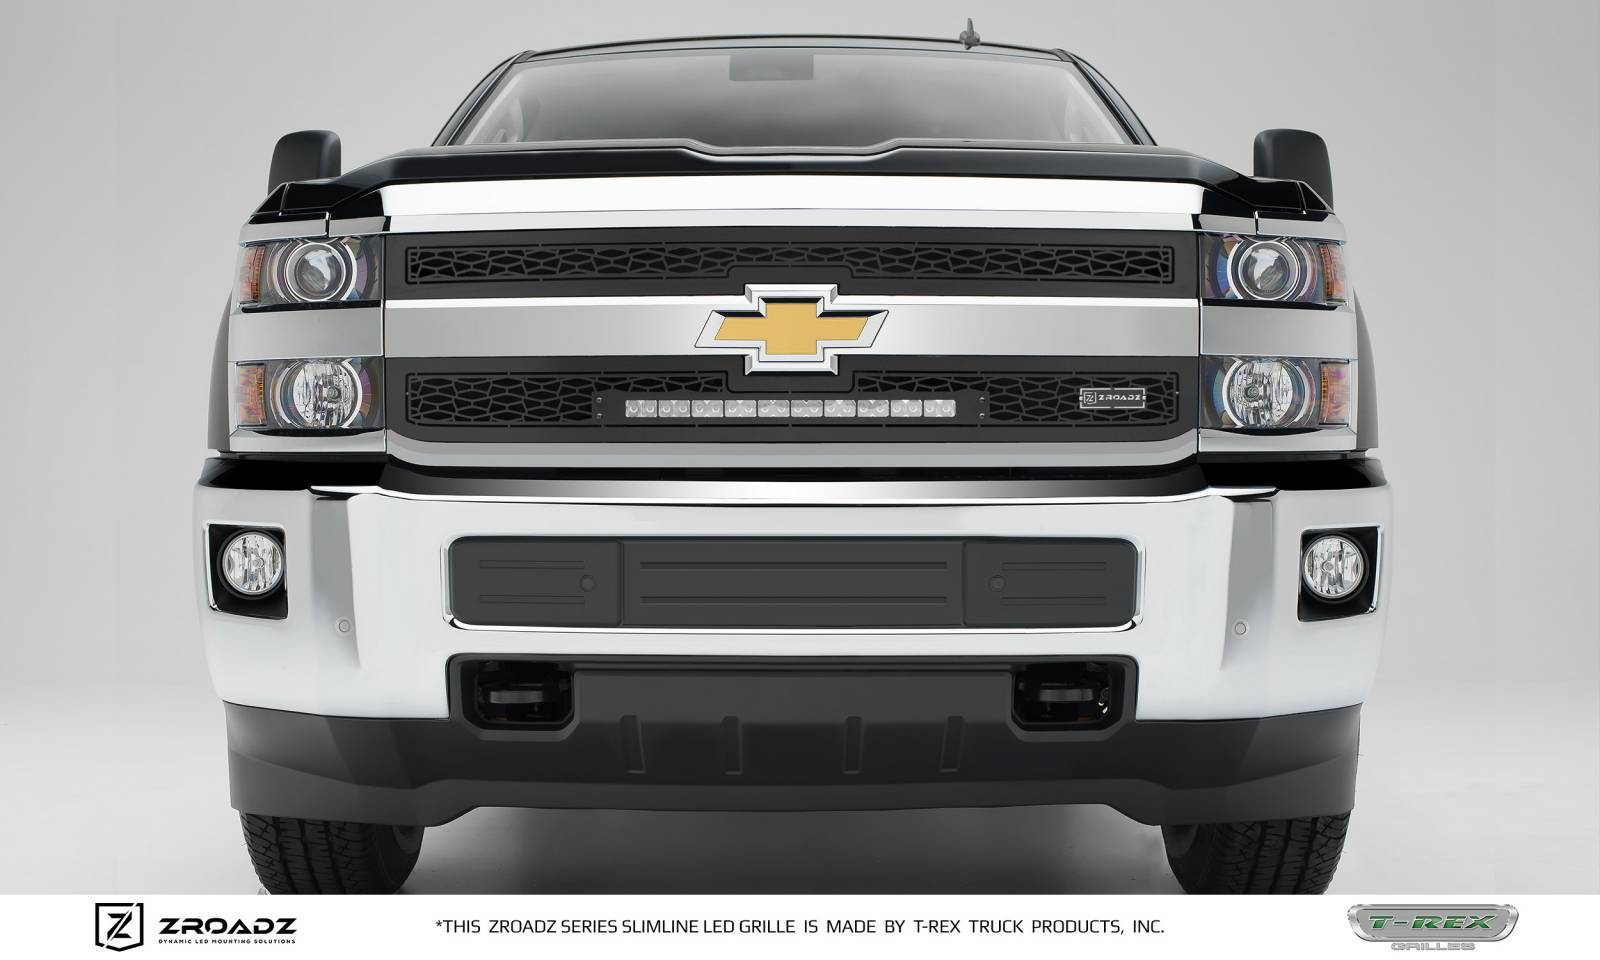 T-REX Chevrolet Silverado 2500/3500 HD - ZROADZ Series - Main 2 PC Insert - Grille w/ One 20 Inch Slim Line Single Row LED Light Bar - Includes Universal Wiring Harness - Part# Z311221